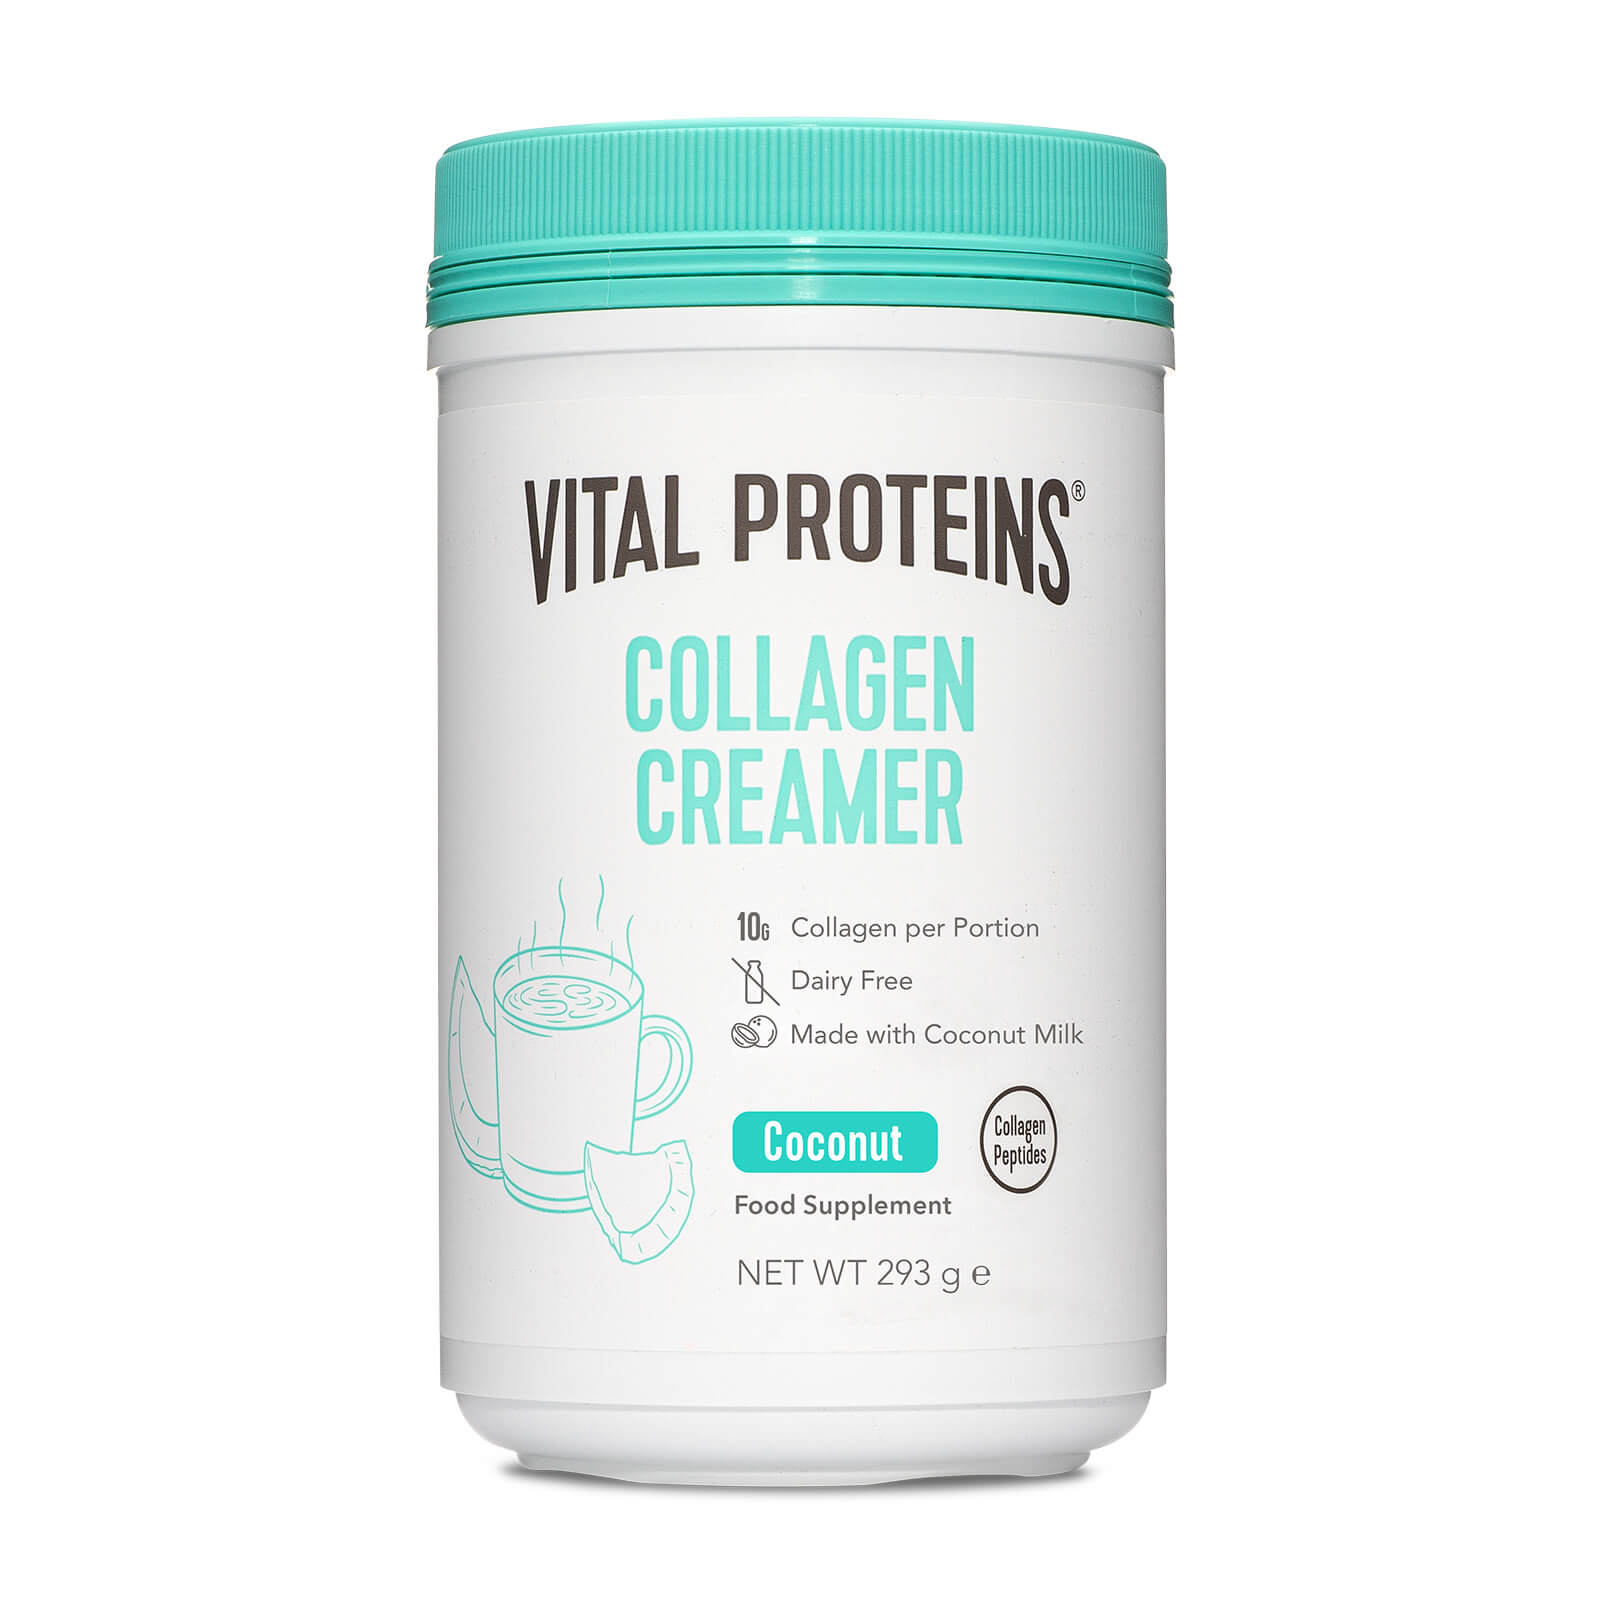 Collagen Creamer - Coconut Subscription - Delivery Every 1 Month